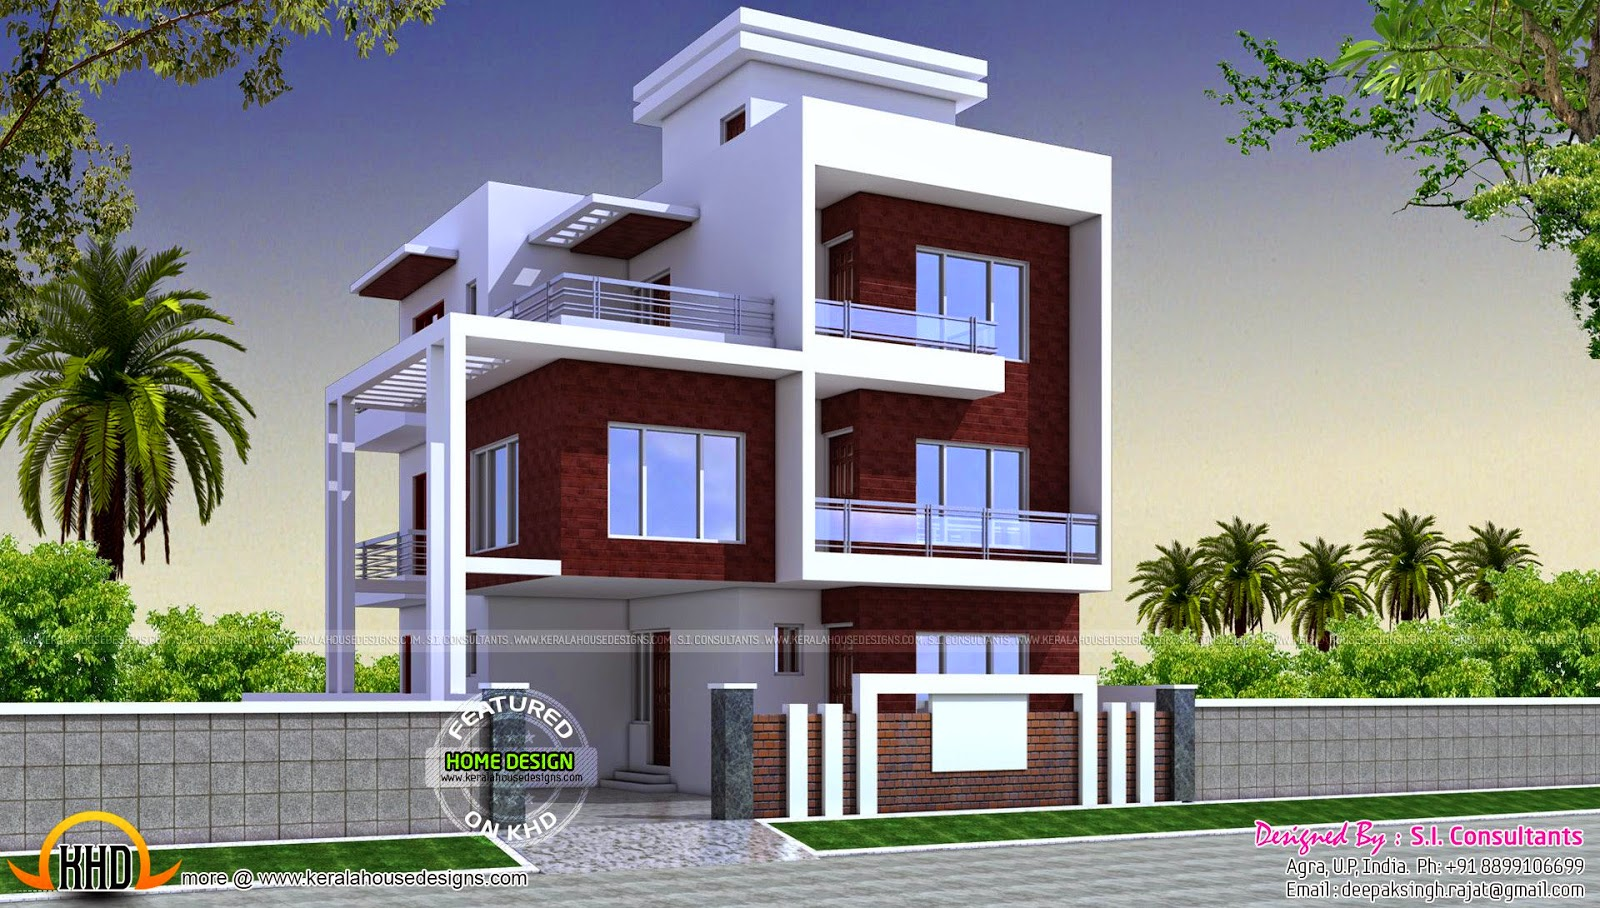 3 Bedroom Apartment Rent January 2015 Kerala Home Design And Floor Plans